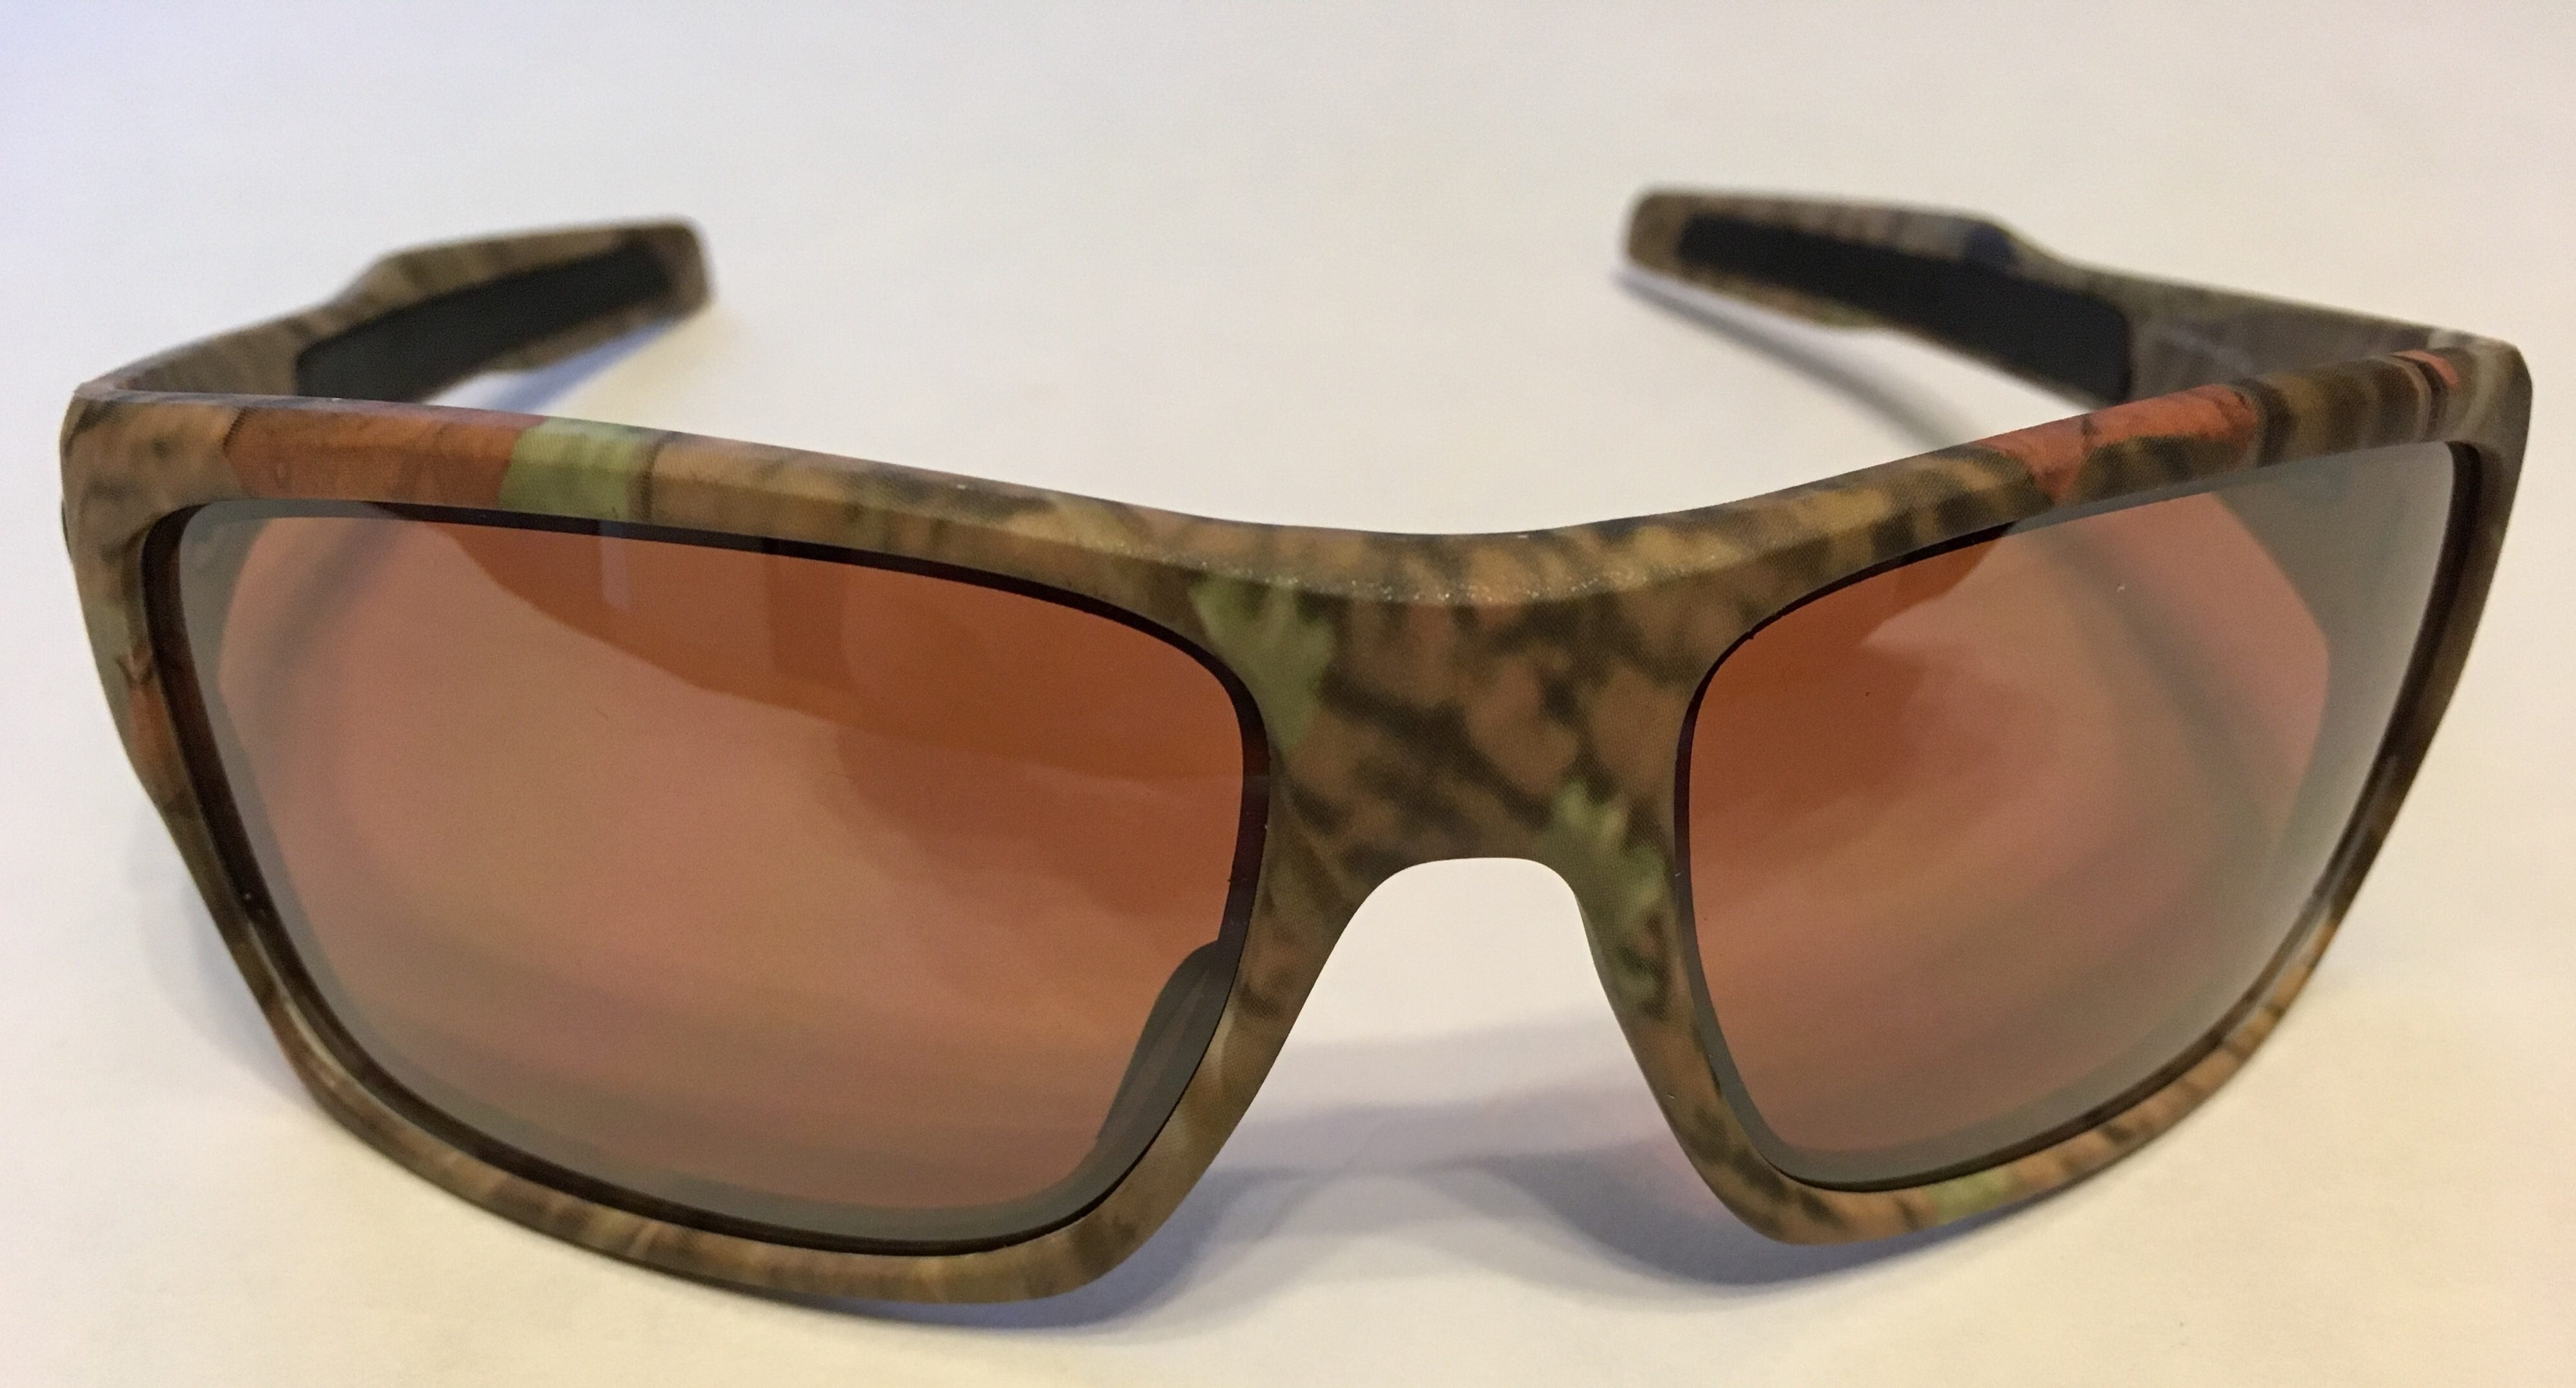 ca6b811670 Oakley Turbine Sunglasses - Woodland Camo - VR28 Black Iridium - OO9263-28